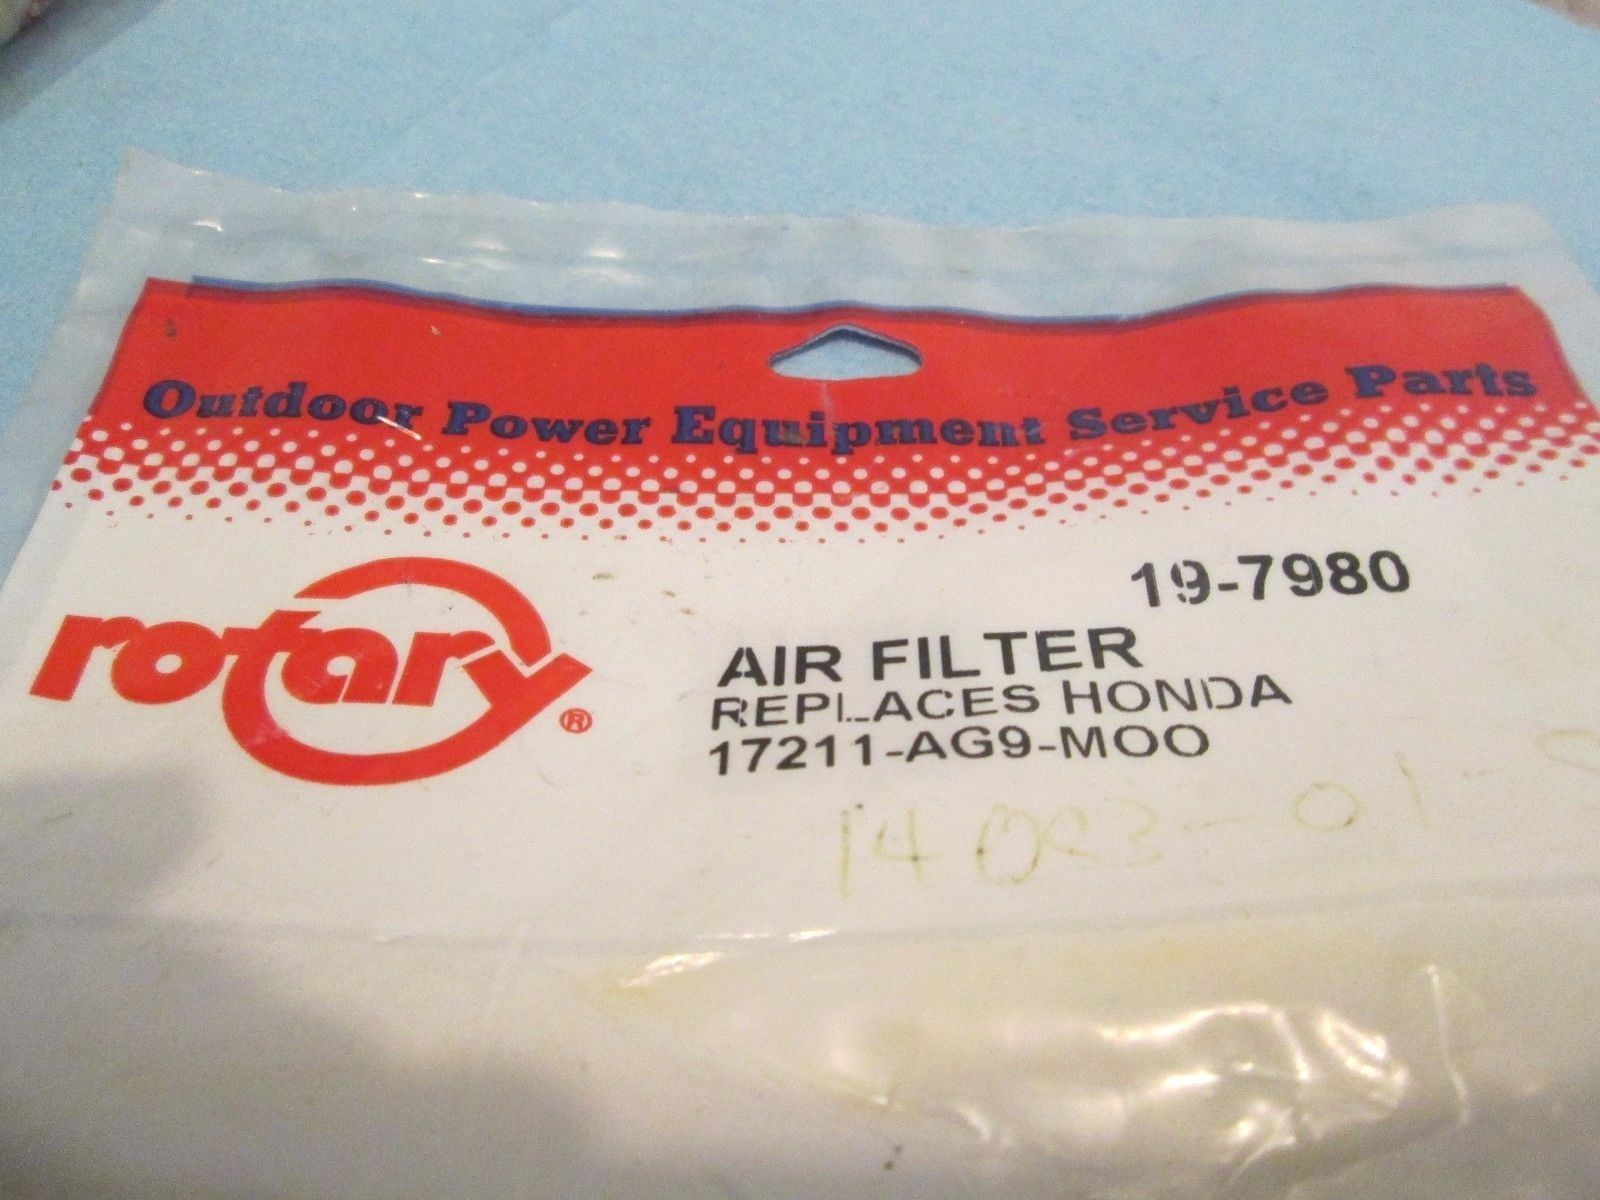 Primary image for 19-7980, Rotary, Air filter, Replaces Honda 17211-AG9-M00, Quantity=2